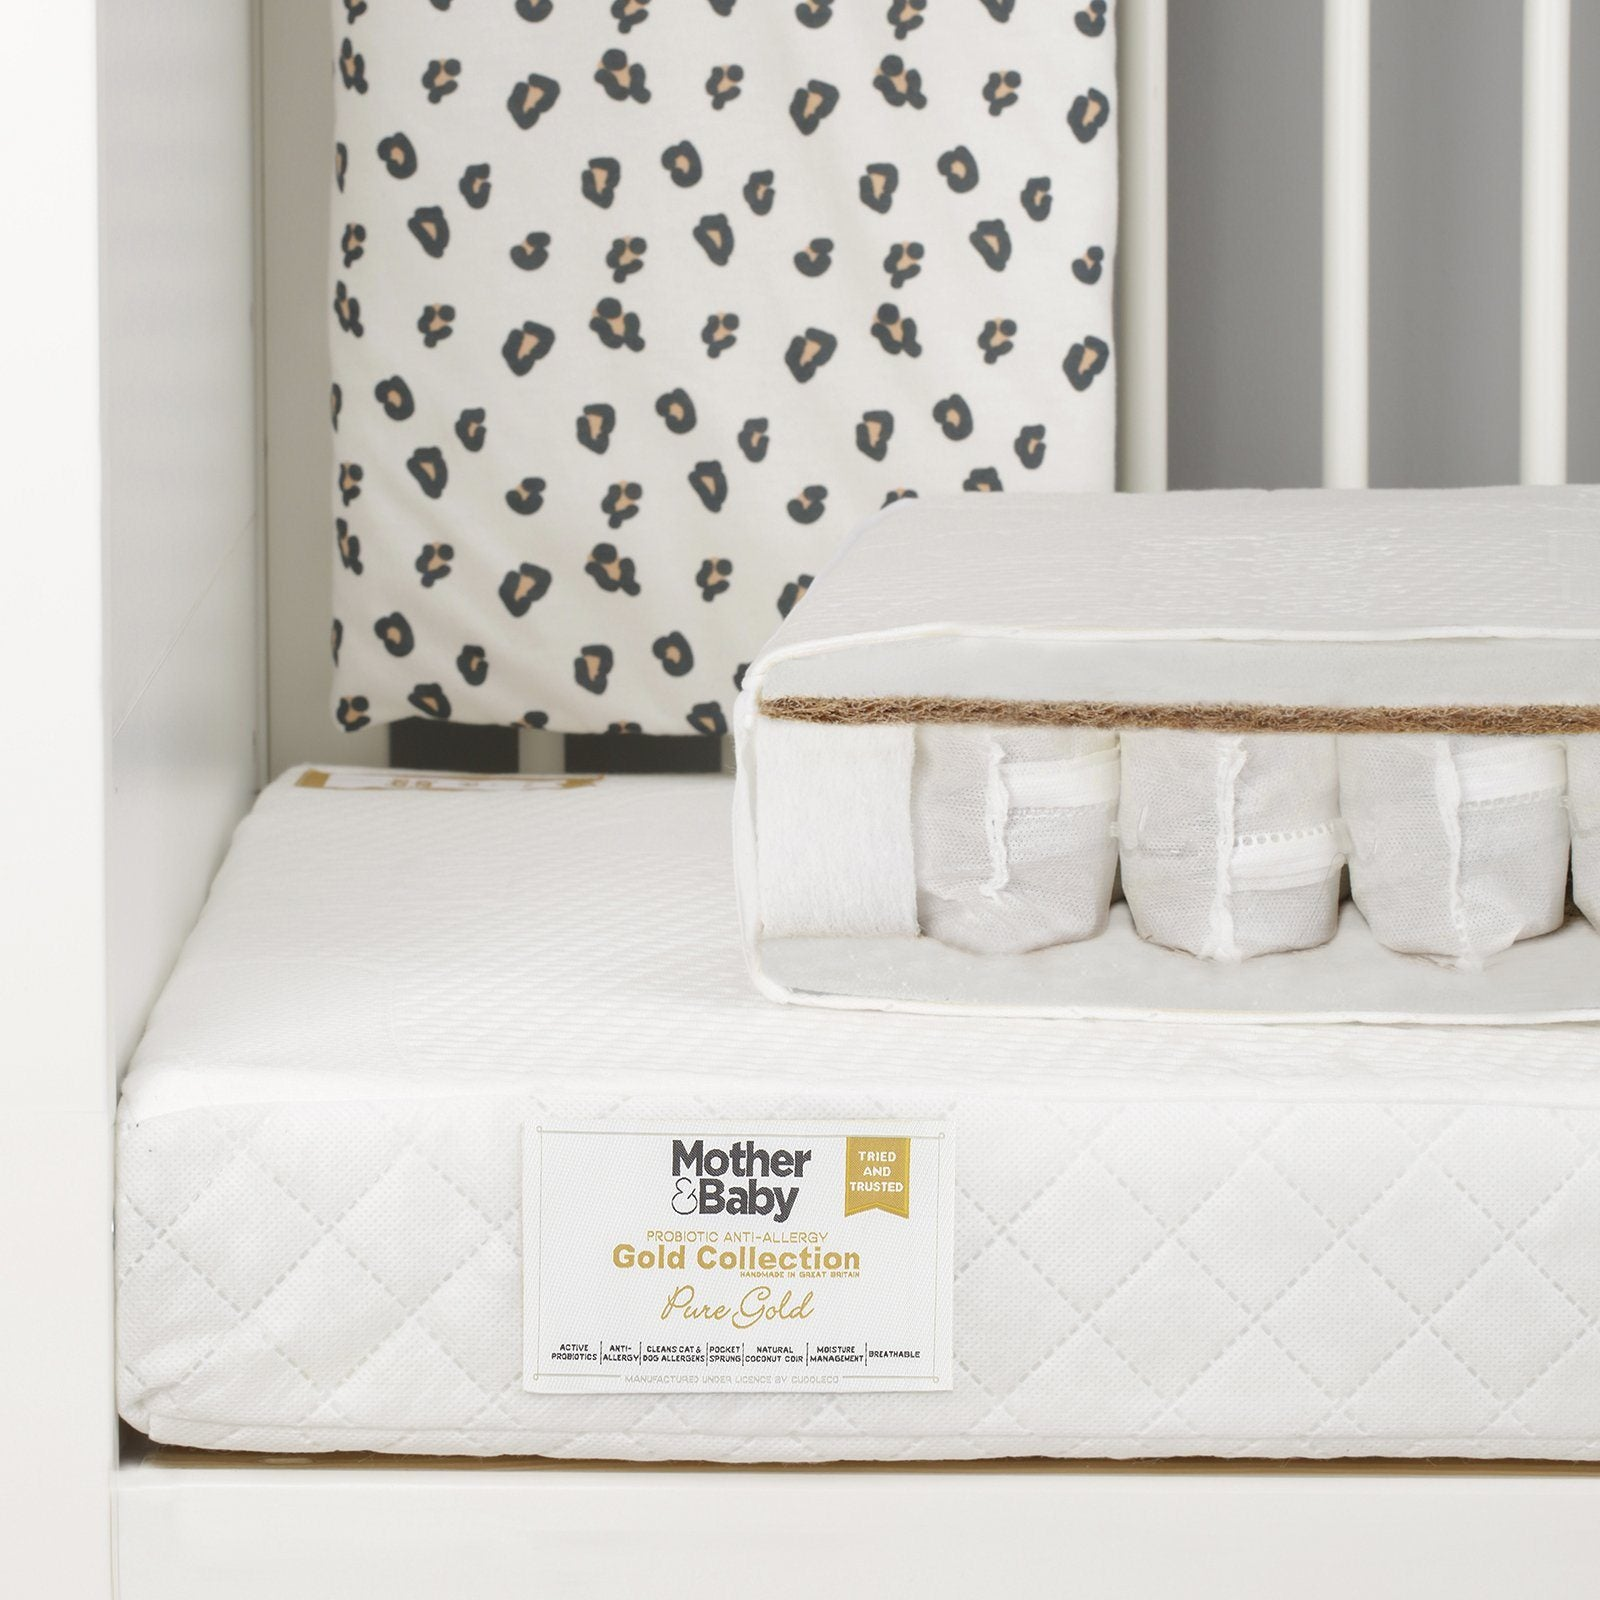 Mother&Baby Pure Gold Anti-Allergy Coir Pocket Sprung Cot bed Mattress 140 x 70cm Mattresses Mother & Baby